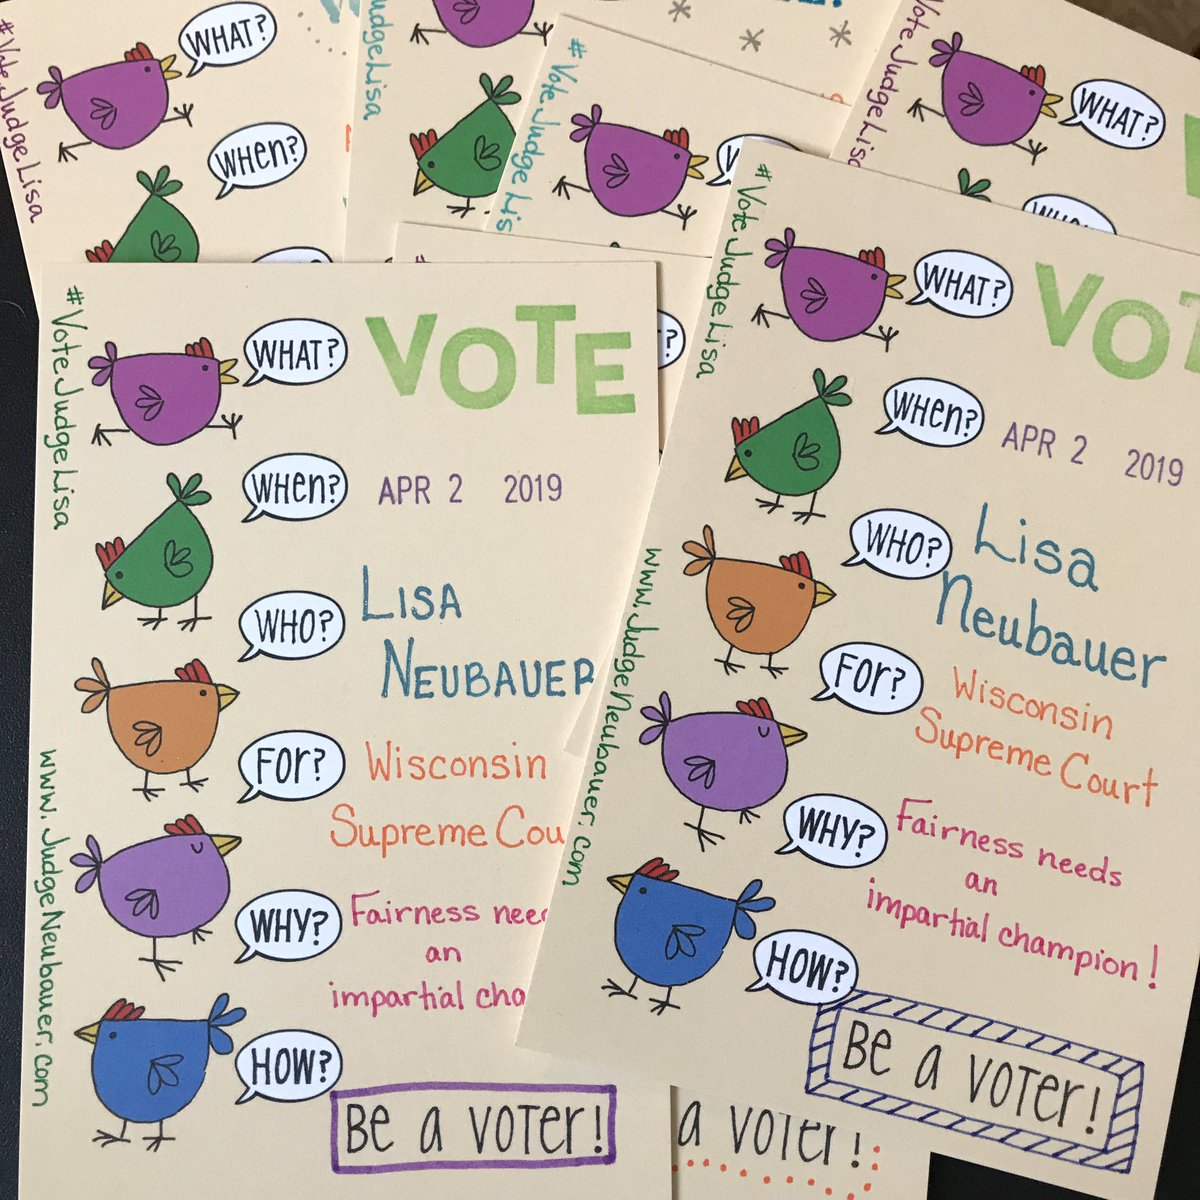 I'm excited to be writing to WI again after last year's successful campaigns! Join #PostcardsToVoters and give democracy a helping hand! #VoteJudgeLisa Fairness needs all of us as champions!